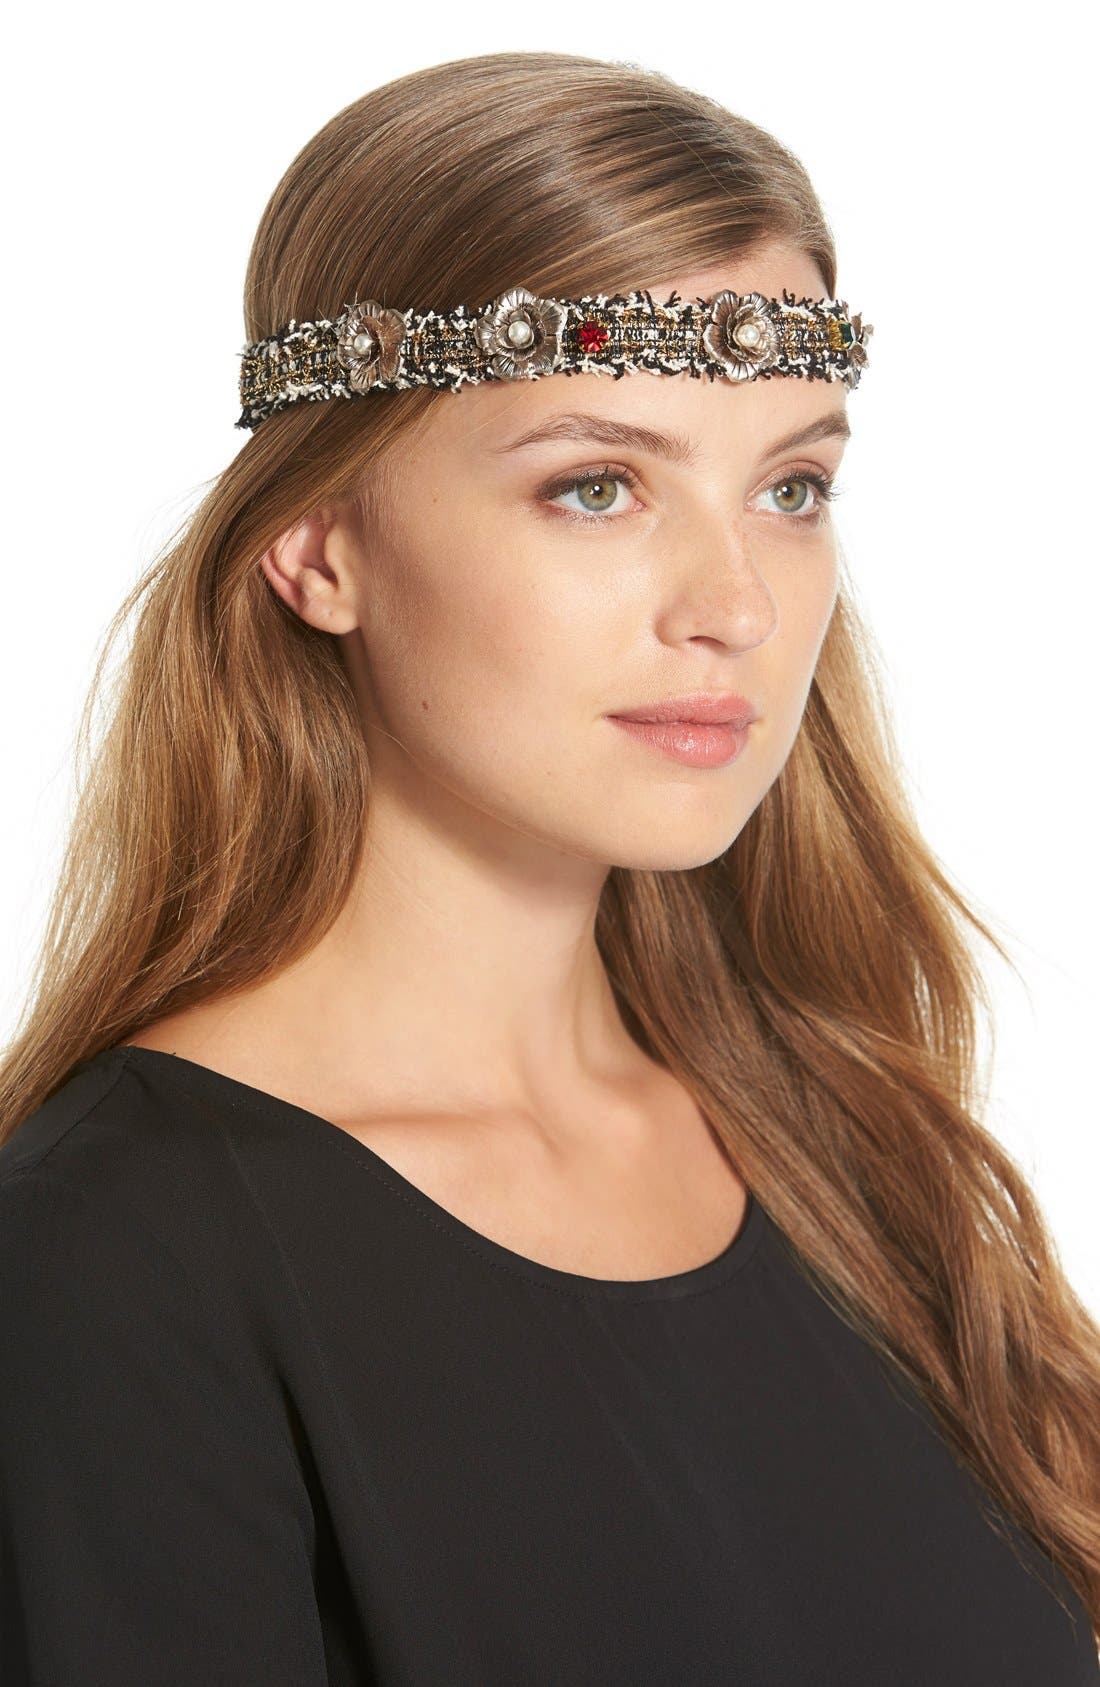 'Keeping It Classy' Head Wrap,                         Main,                         color,